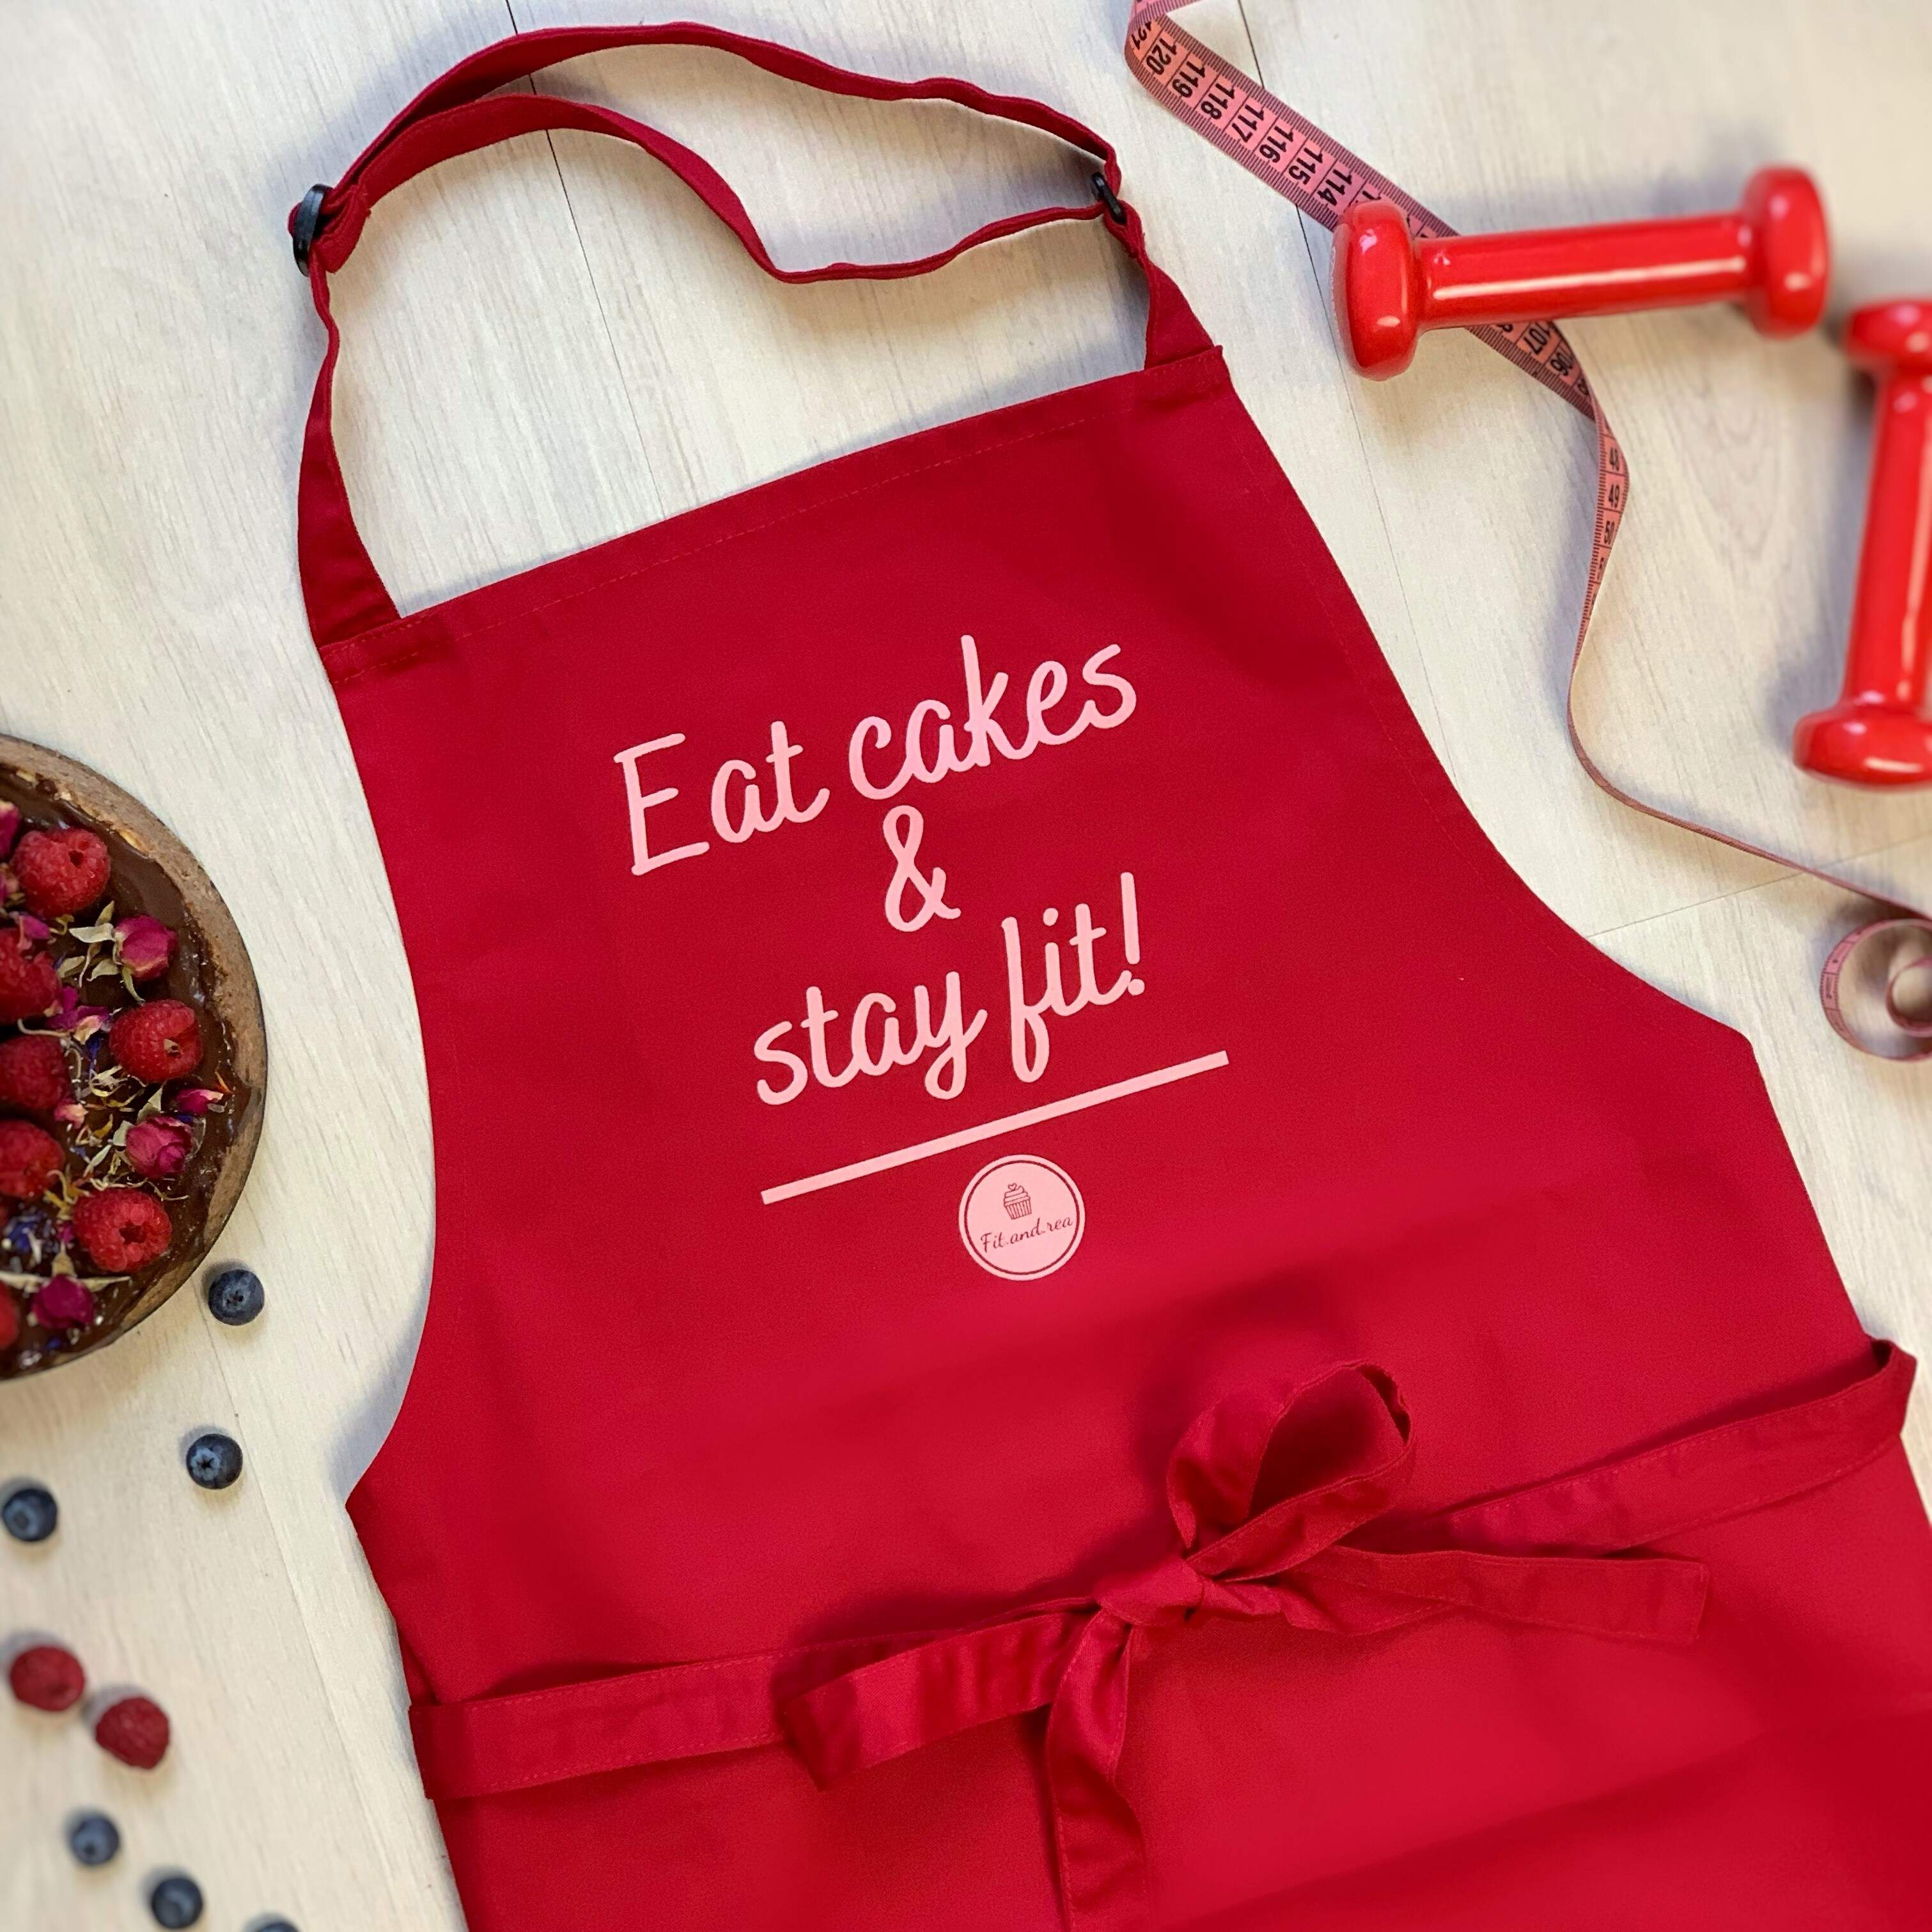 Zástera - Eat cakes & stay fit!